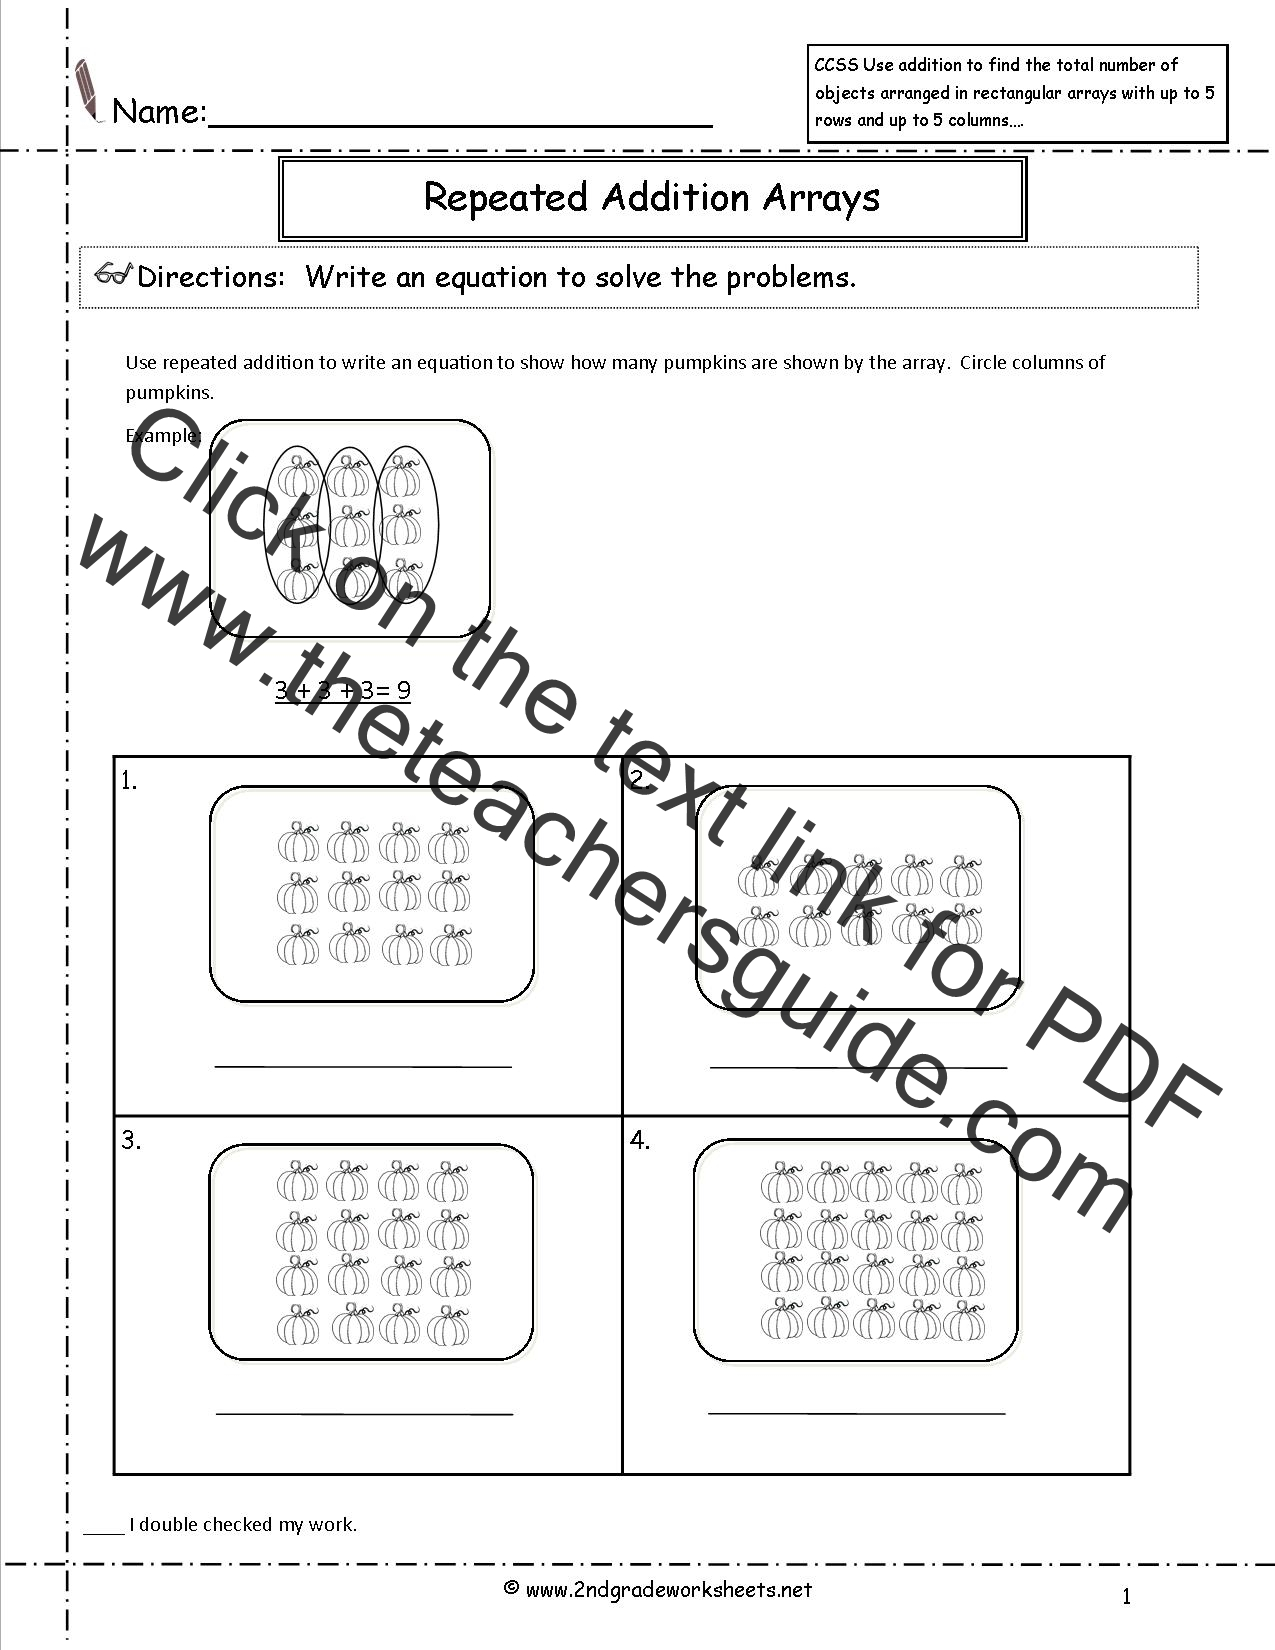 Algebraic Thinking Worksheet